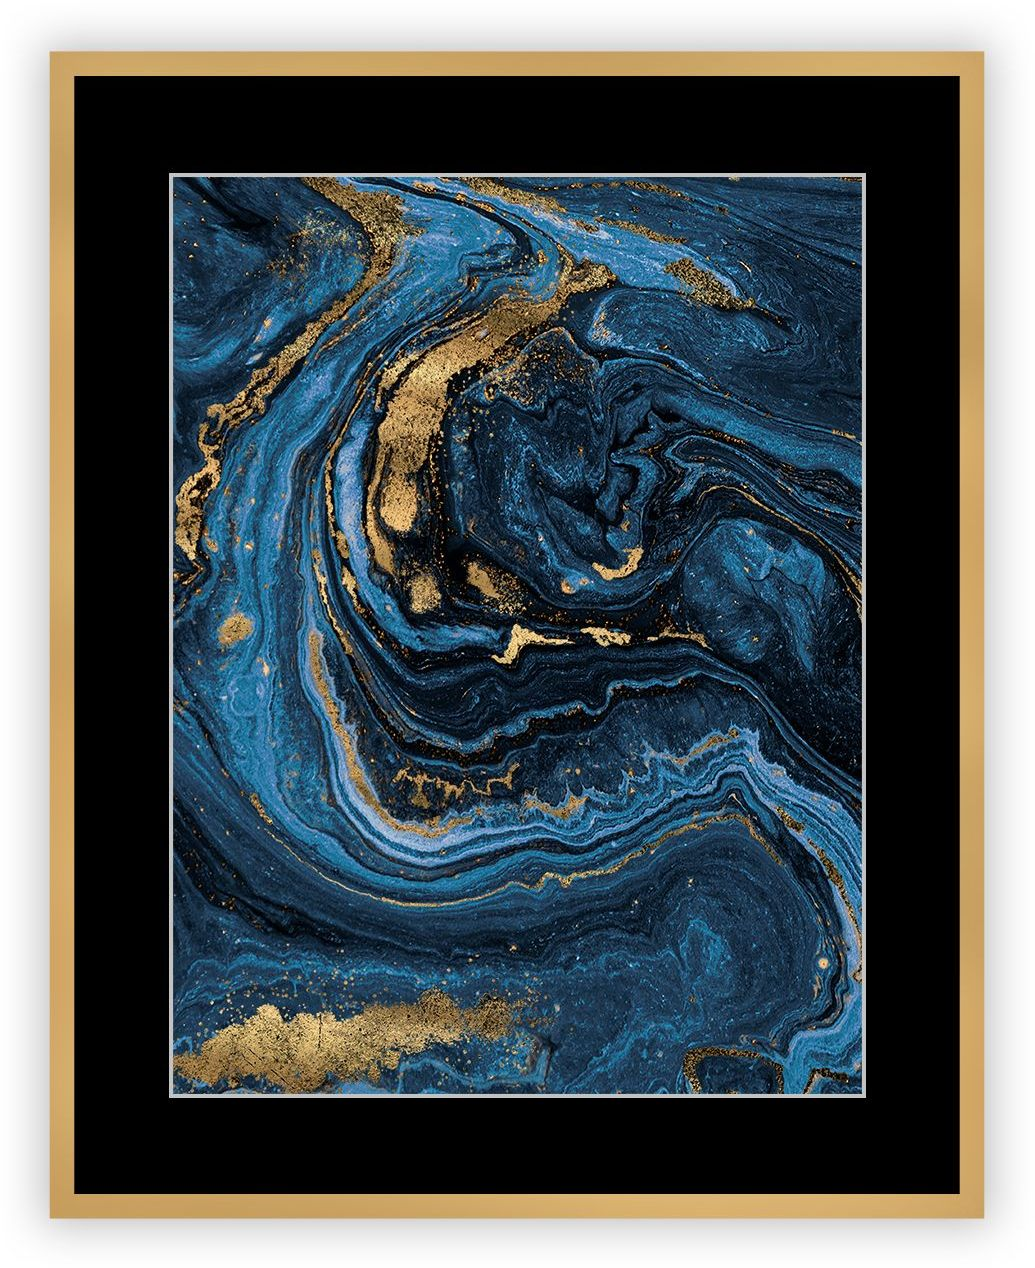 Obraz Abstract Blue&Gold I 40 x 50cm